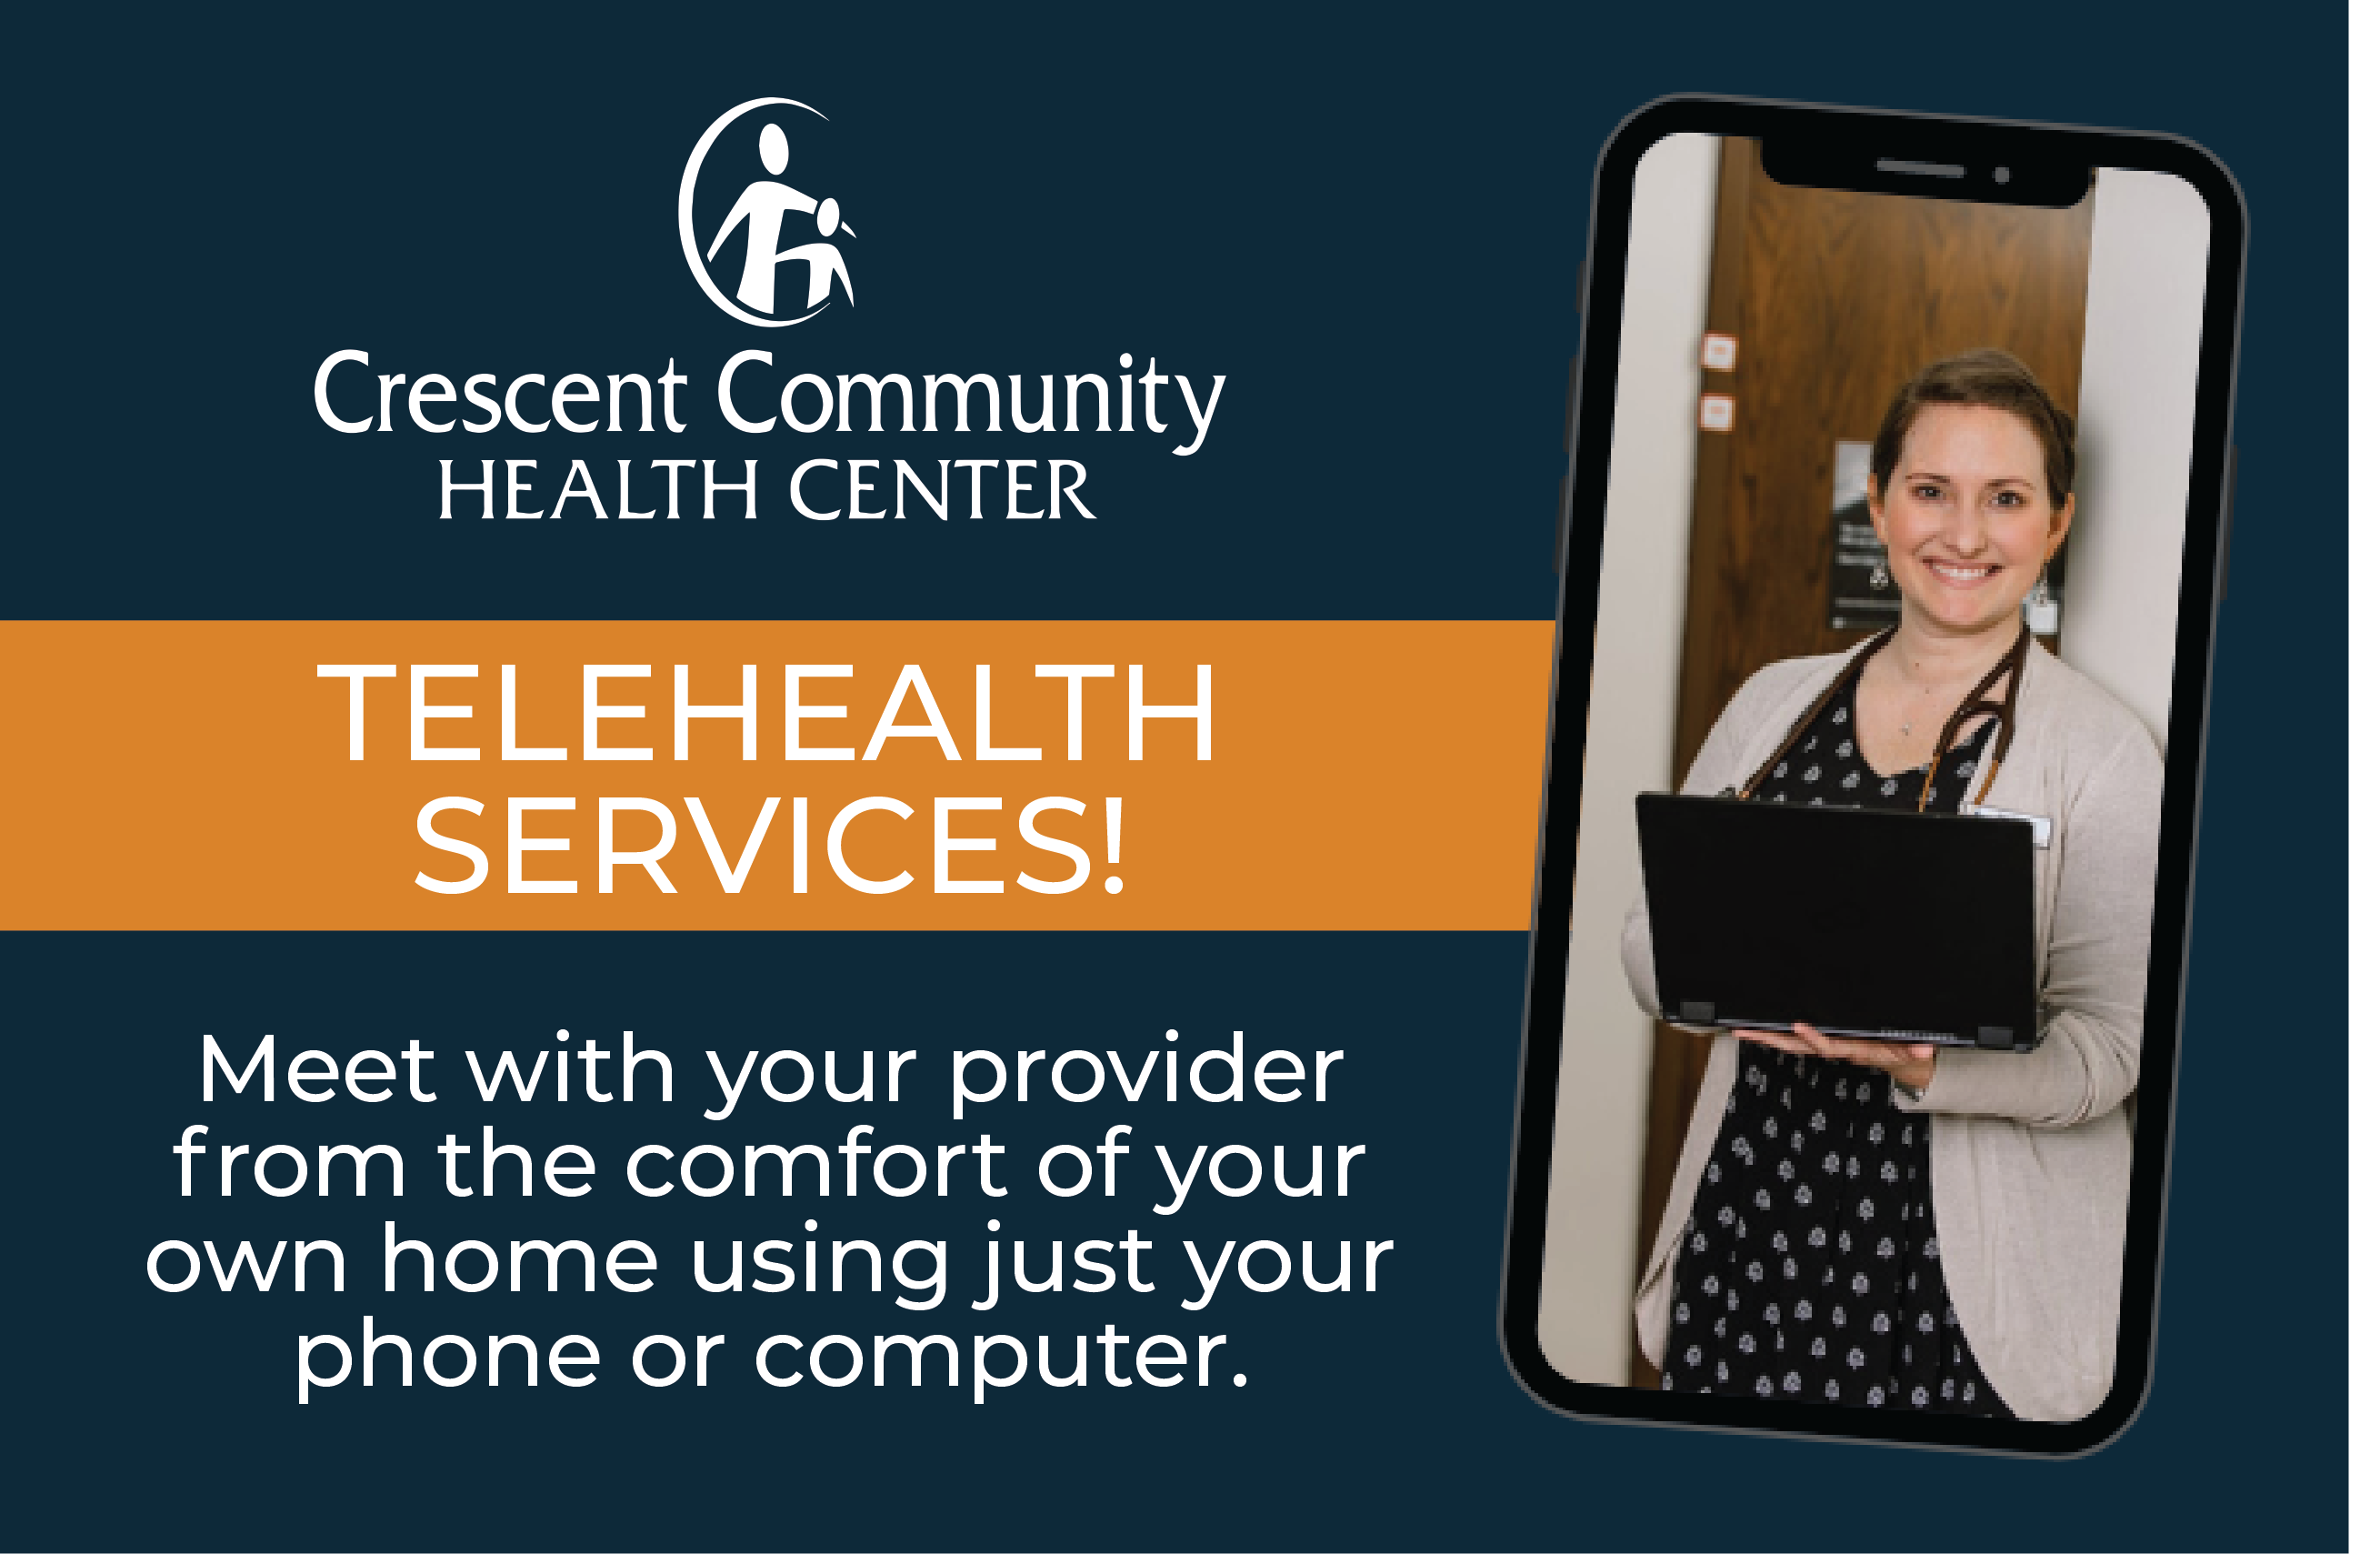 Utilize our Telehealth Services!